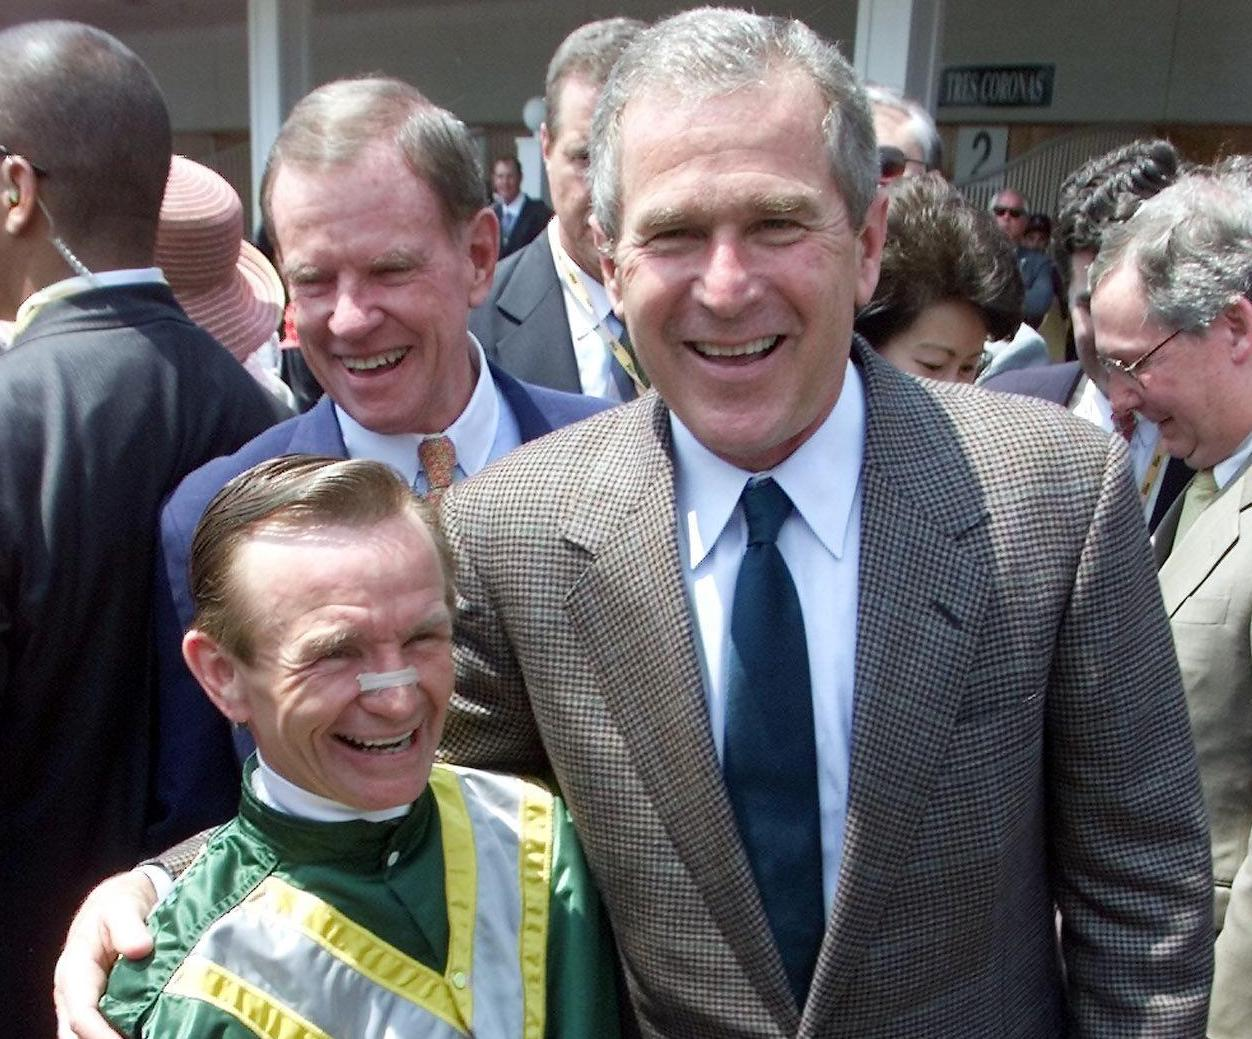 Republican presidential candidate George W. Bush at Kentucky Derby